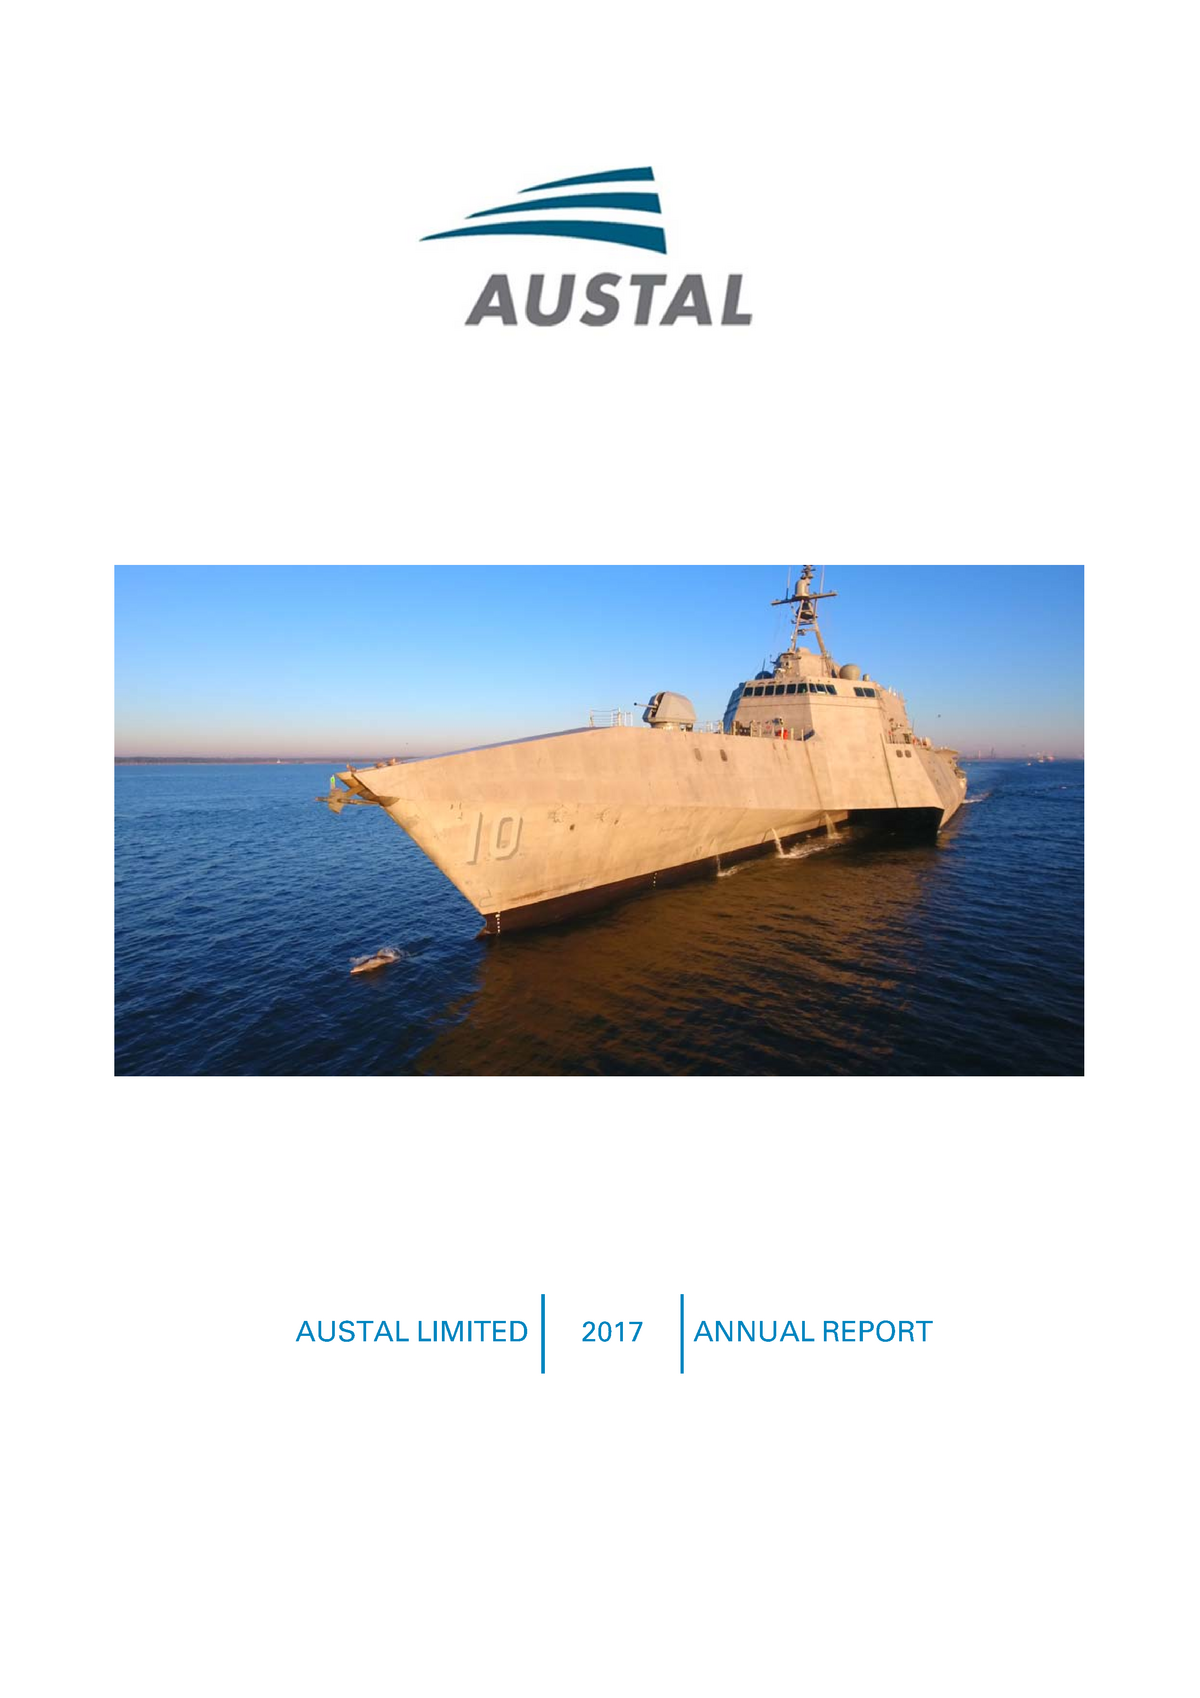 Austal FY2017 Annual Report to Shareholders - EBB638B05